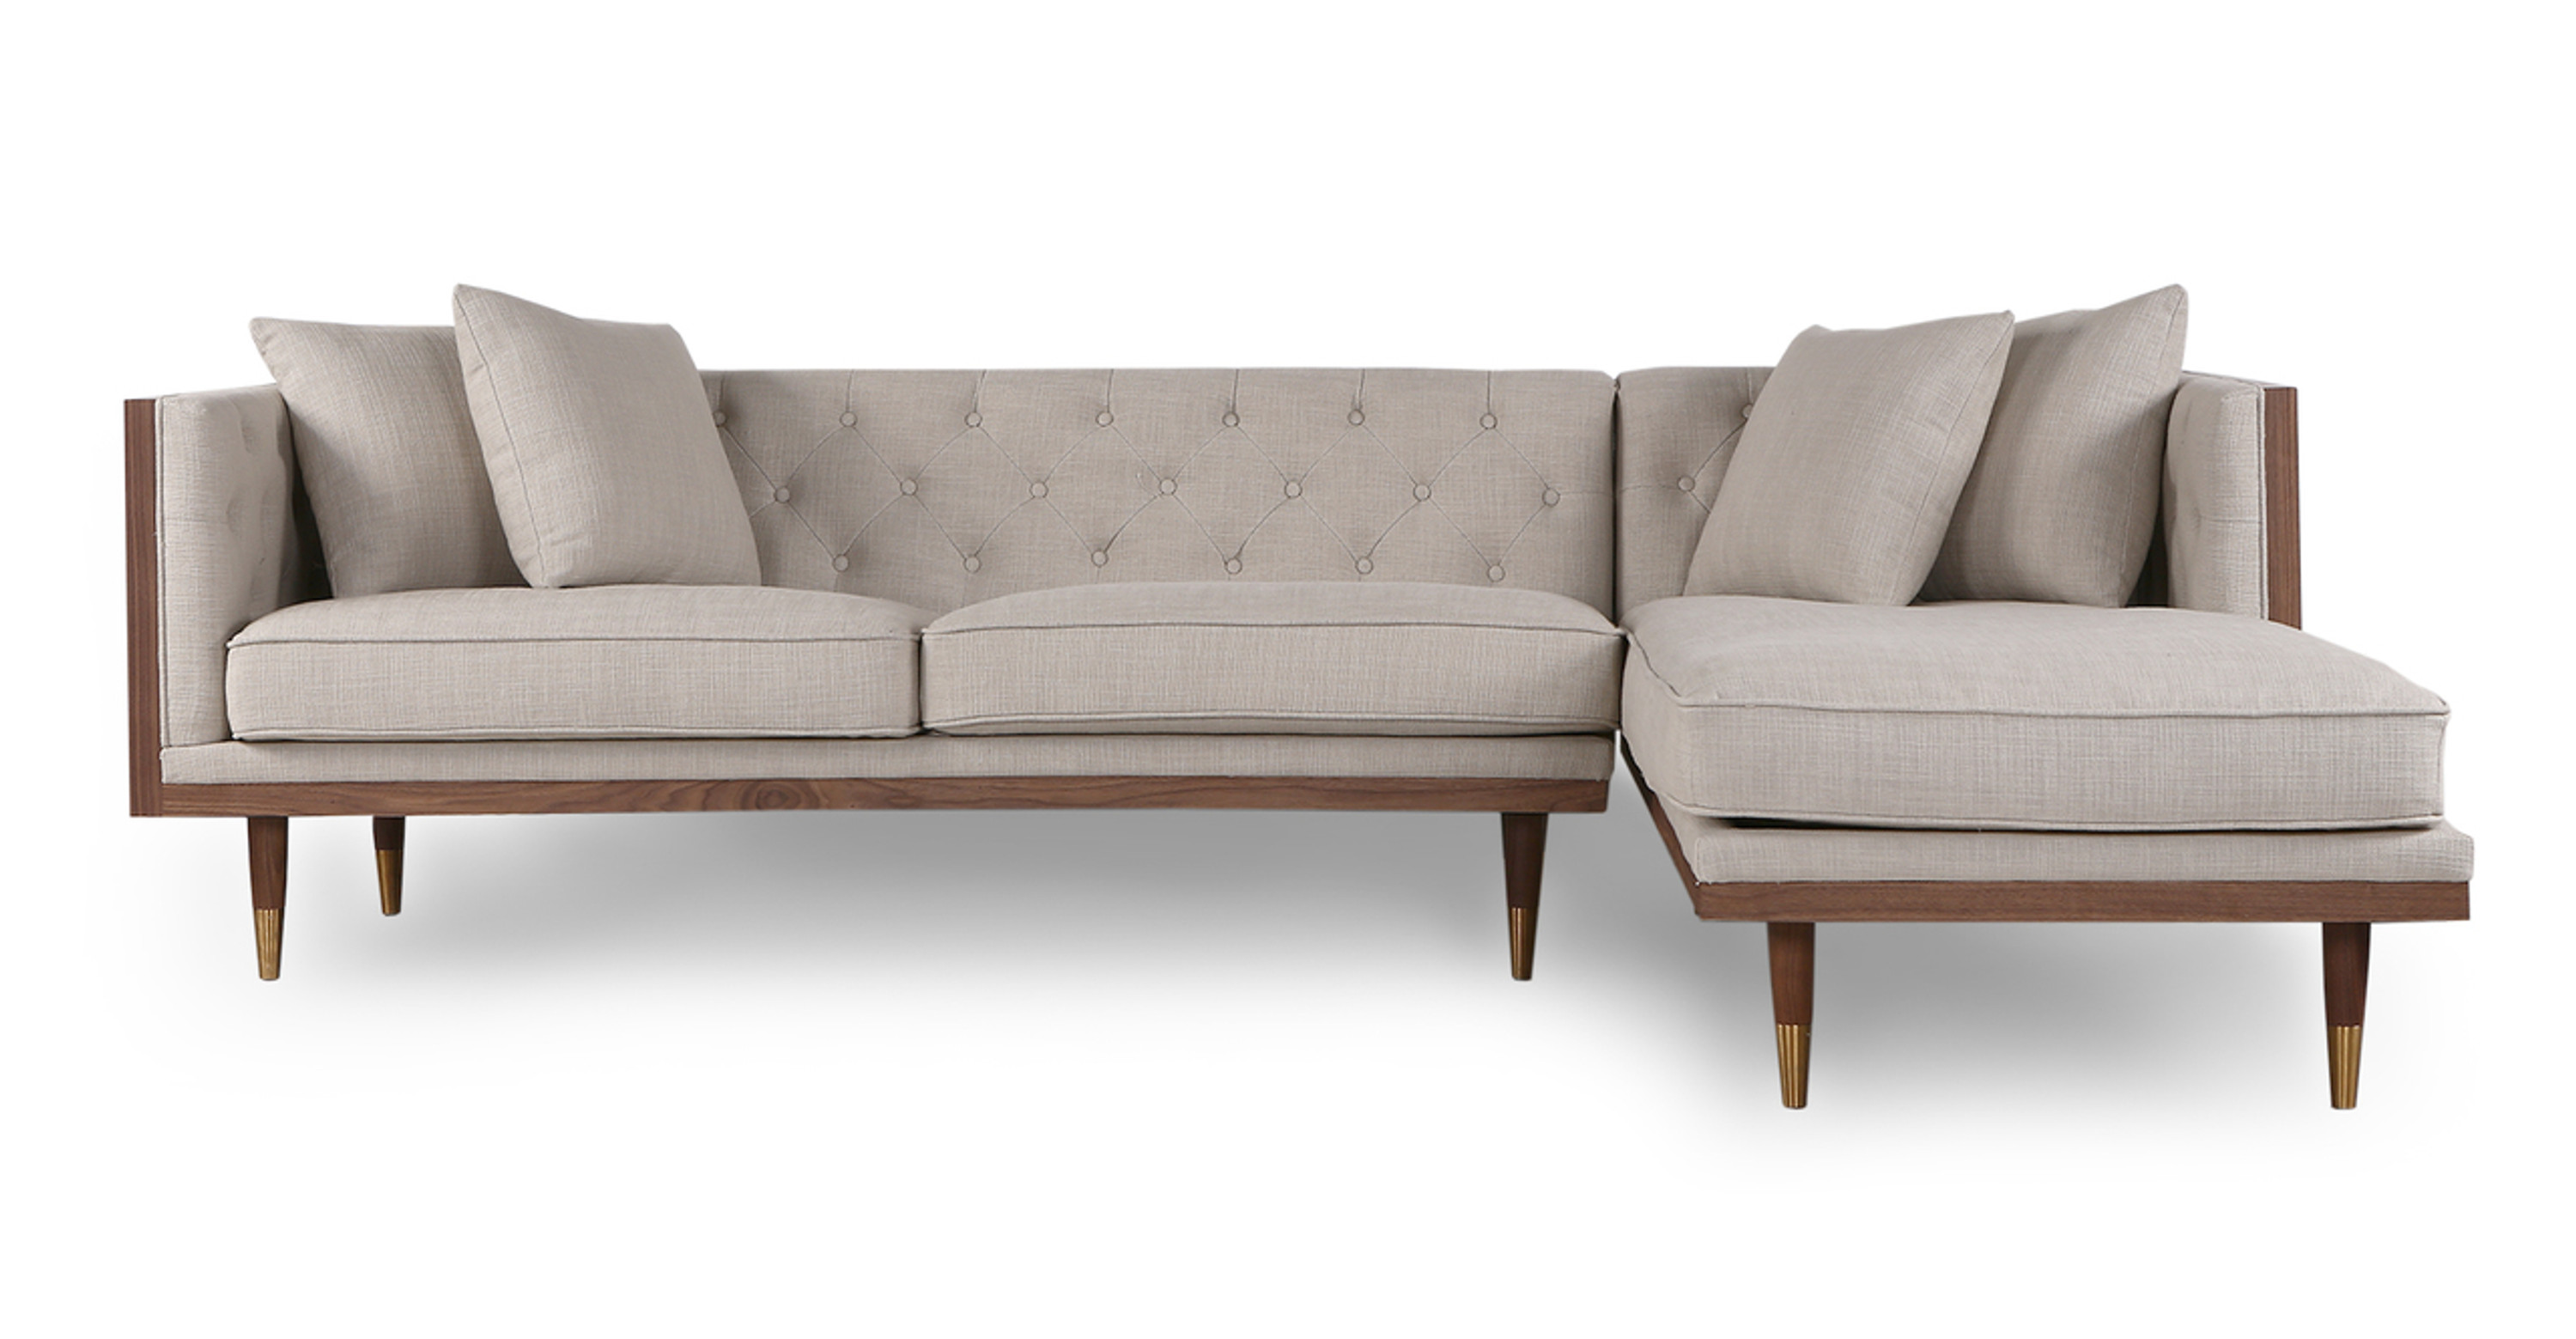 Swell Woodrow Neo 99 Sofa Sectional Right Walnut Urban Hemp Gmtry Best Dining Table And Chair Ideas Images Gmtryco